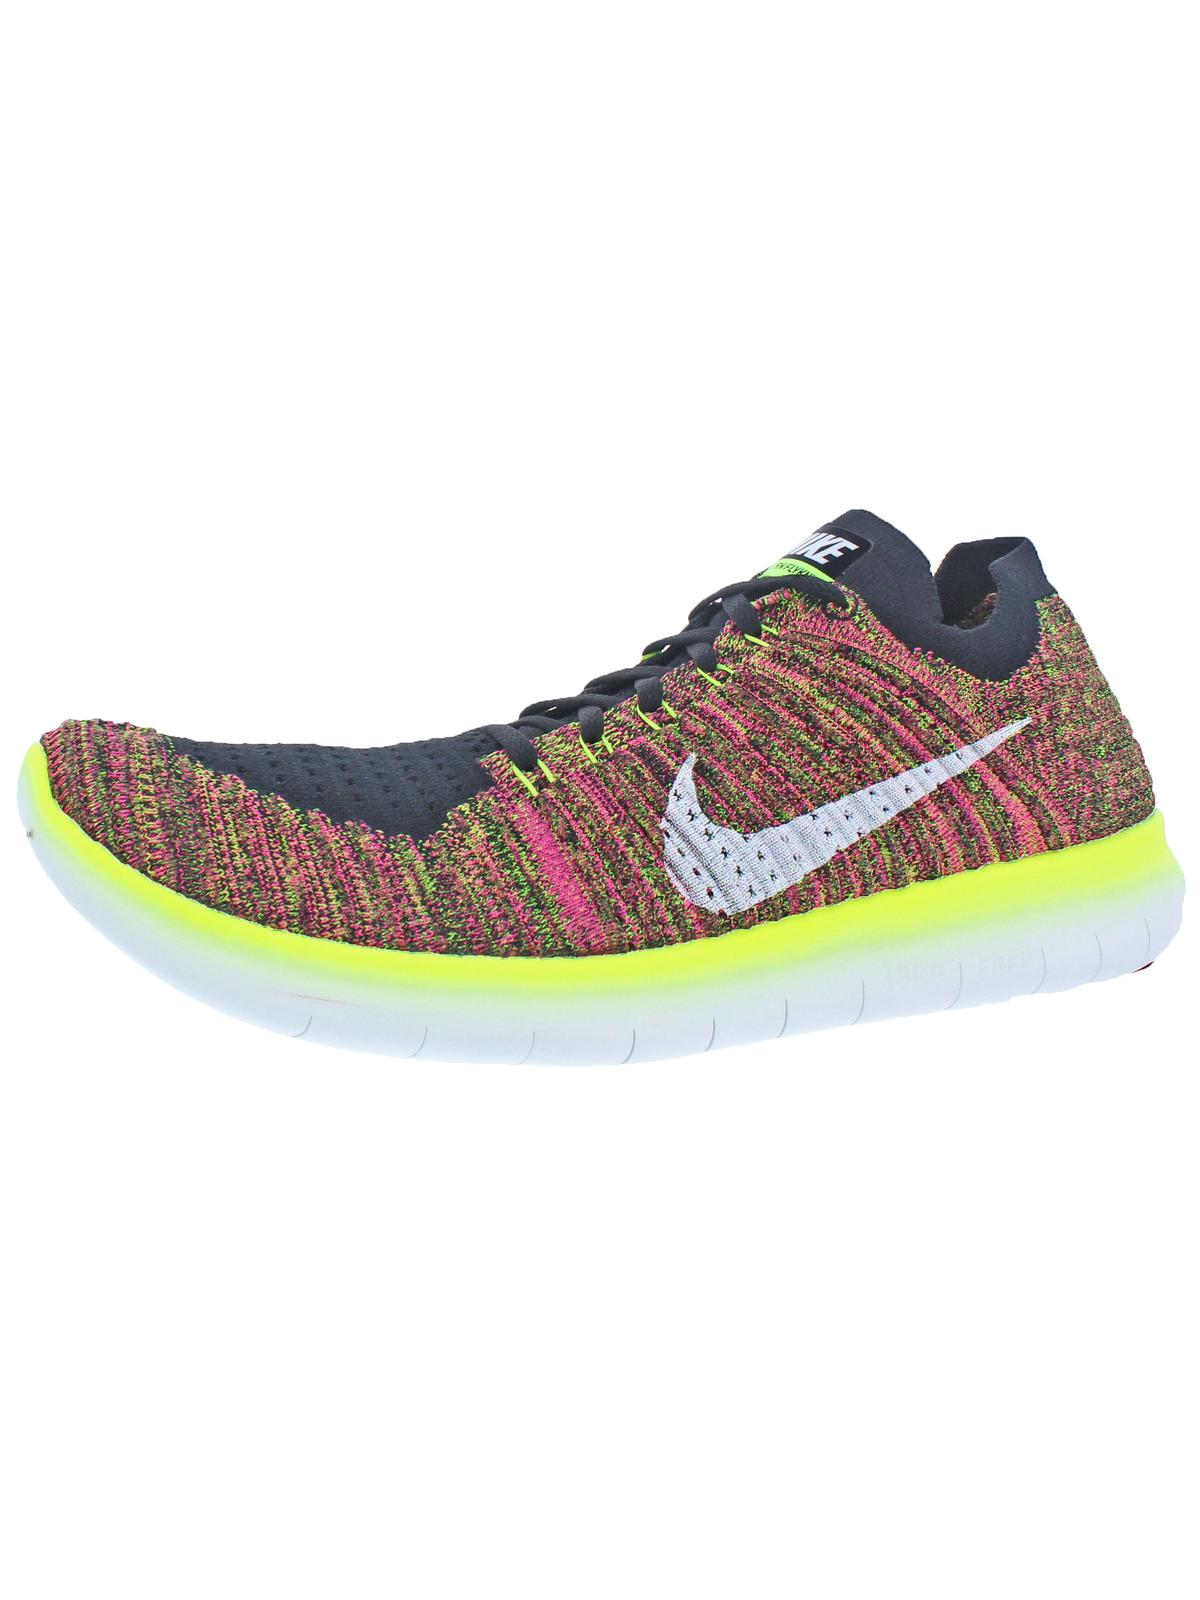 Nike Mens Free RN Flyknit OC Lightweight Running Shoes Multi 15 Medium (D)